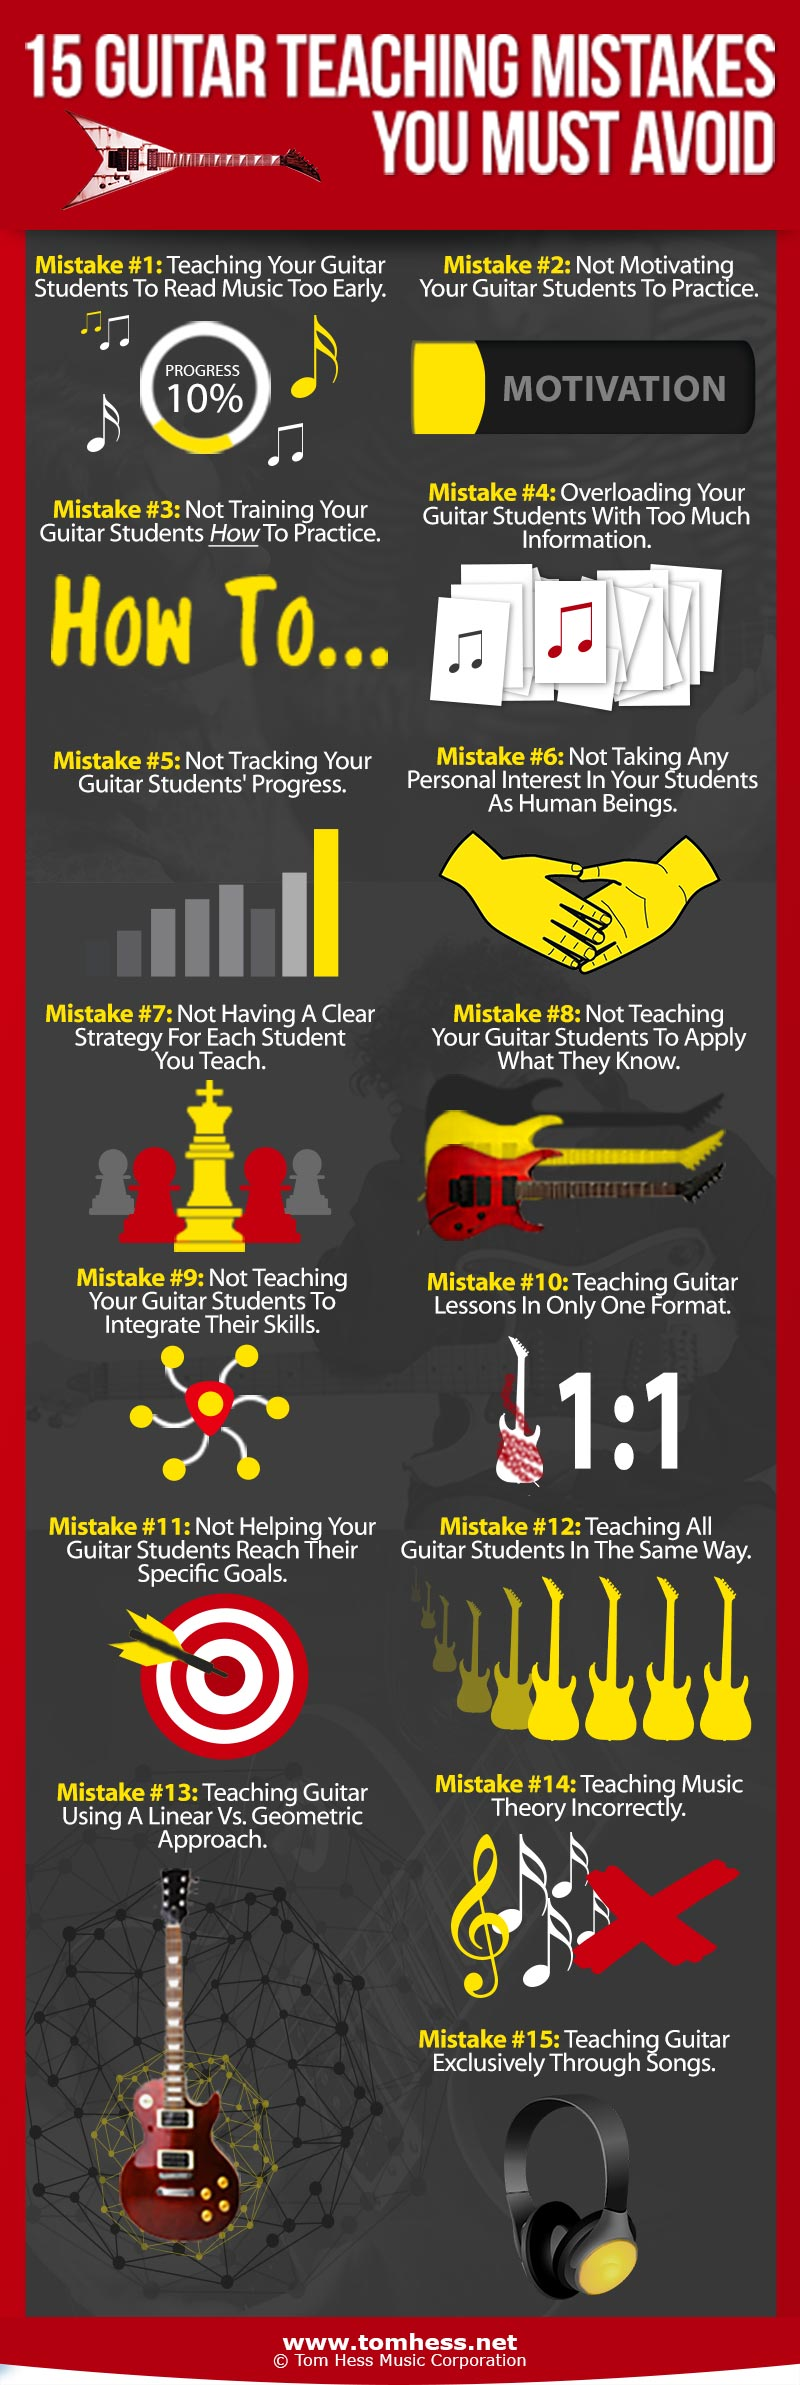 15 Guitar Teaching Mistakes You Must Avoid